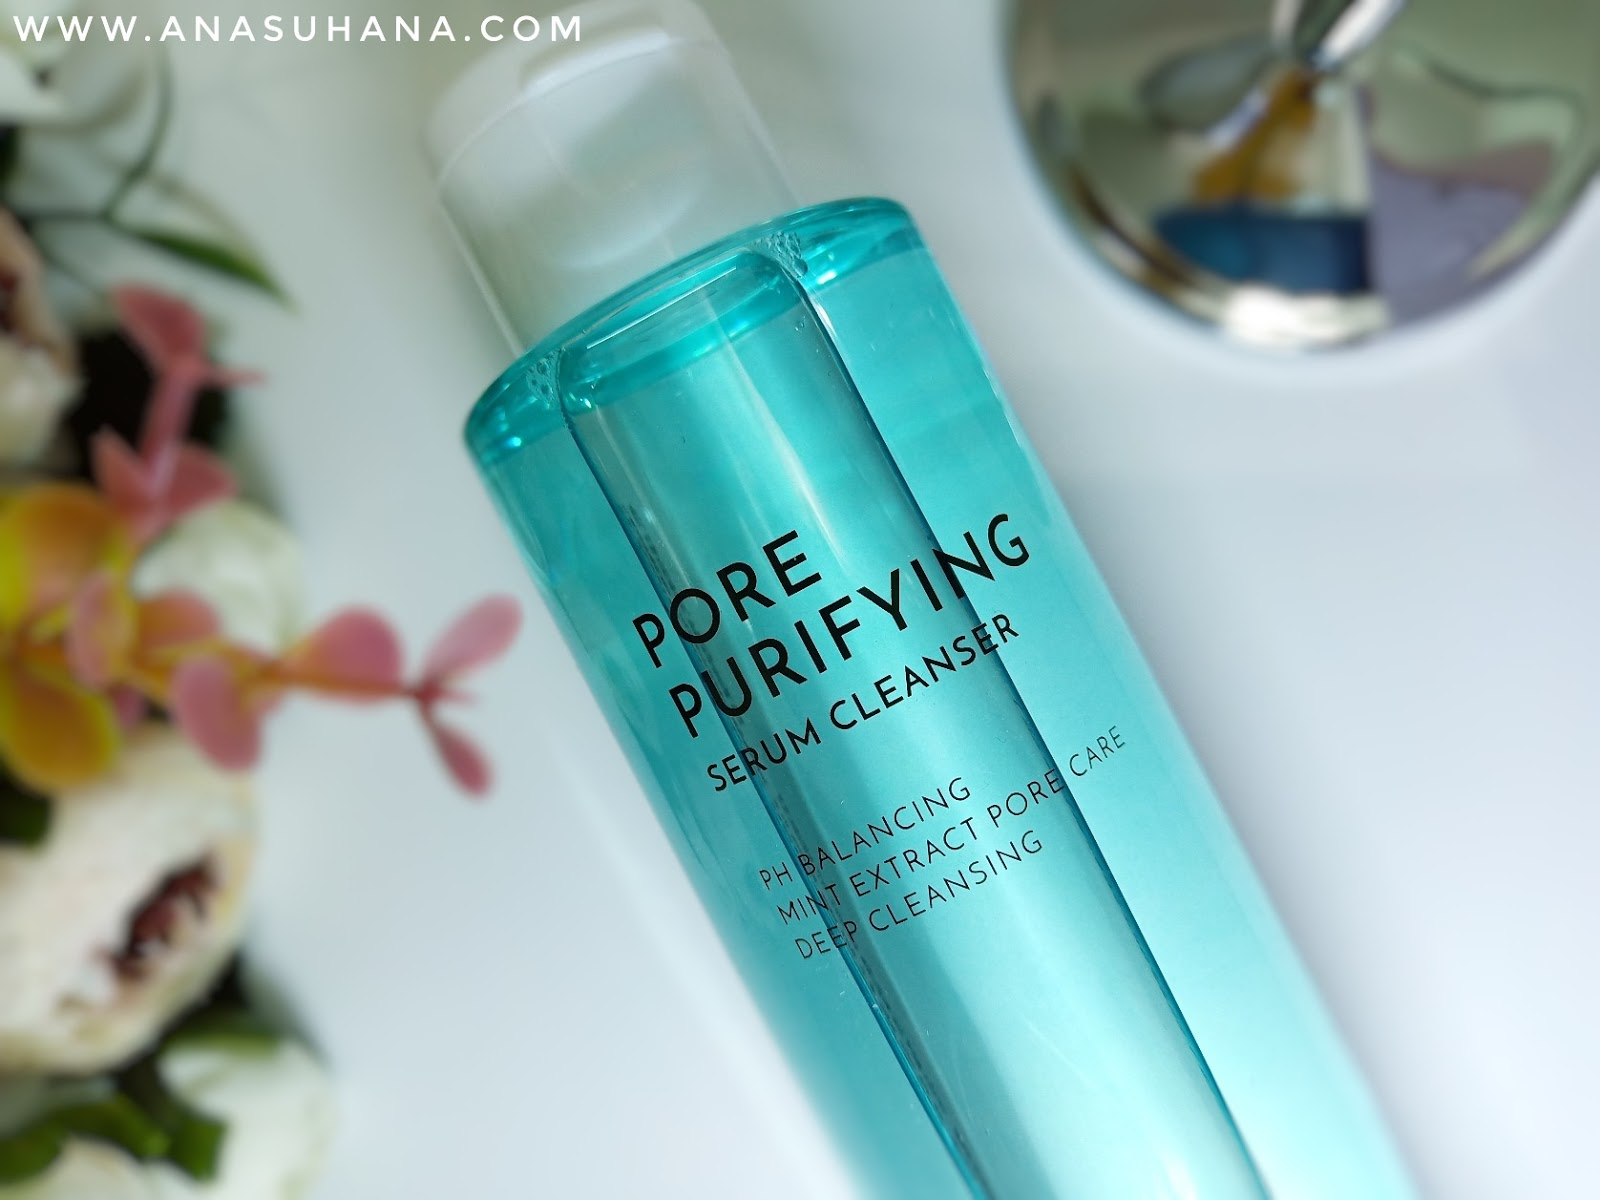 Althea's Pore Purifying Serum Cleanser